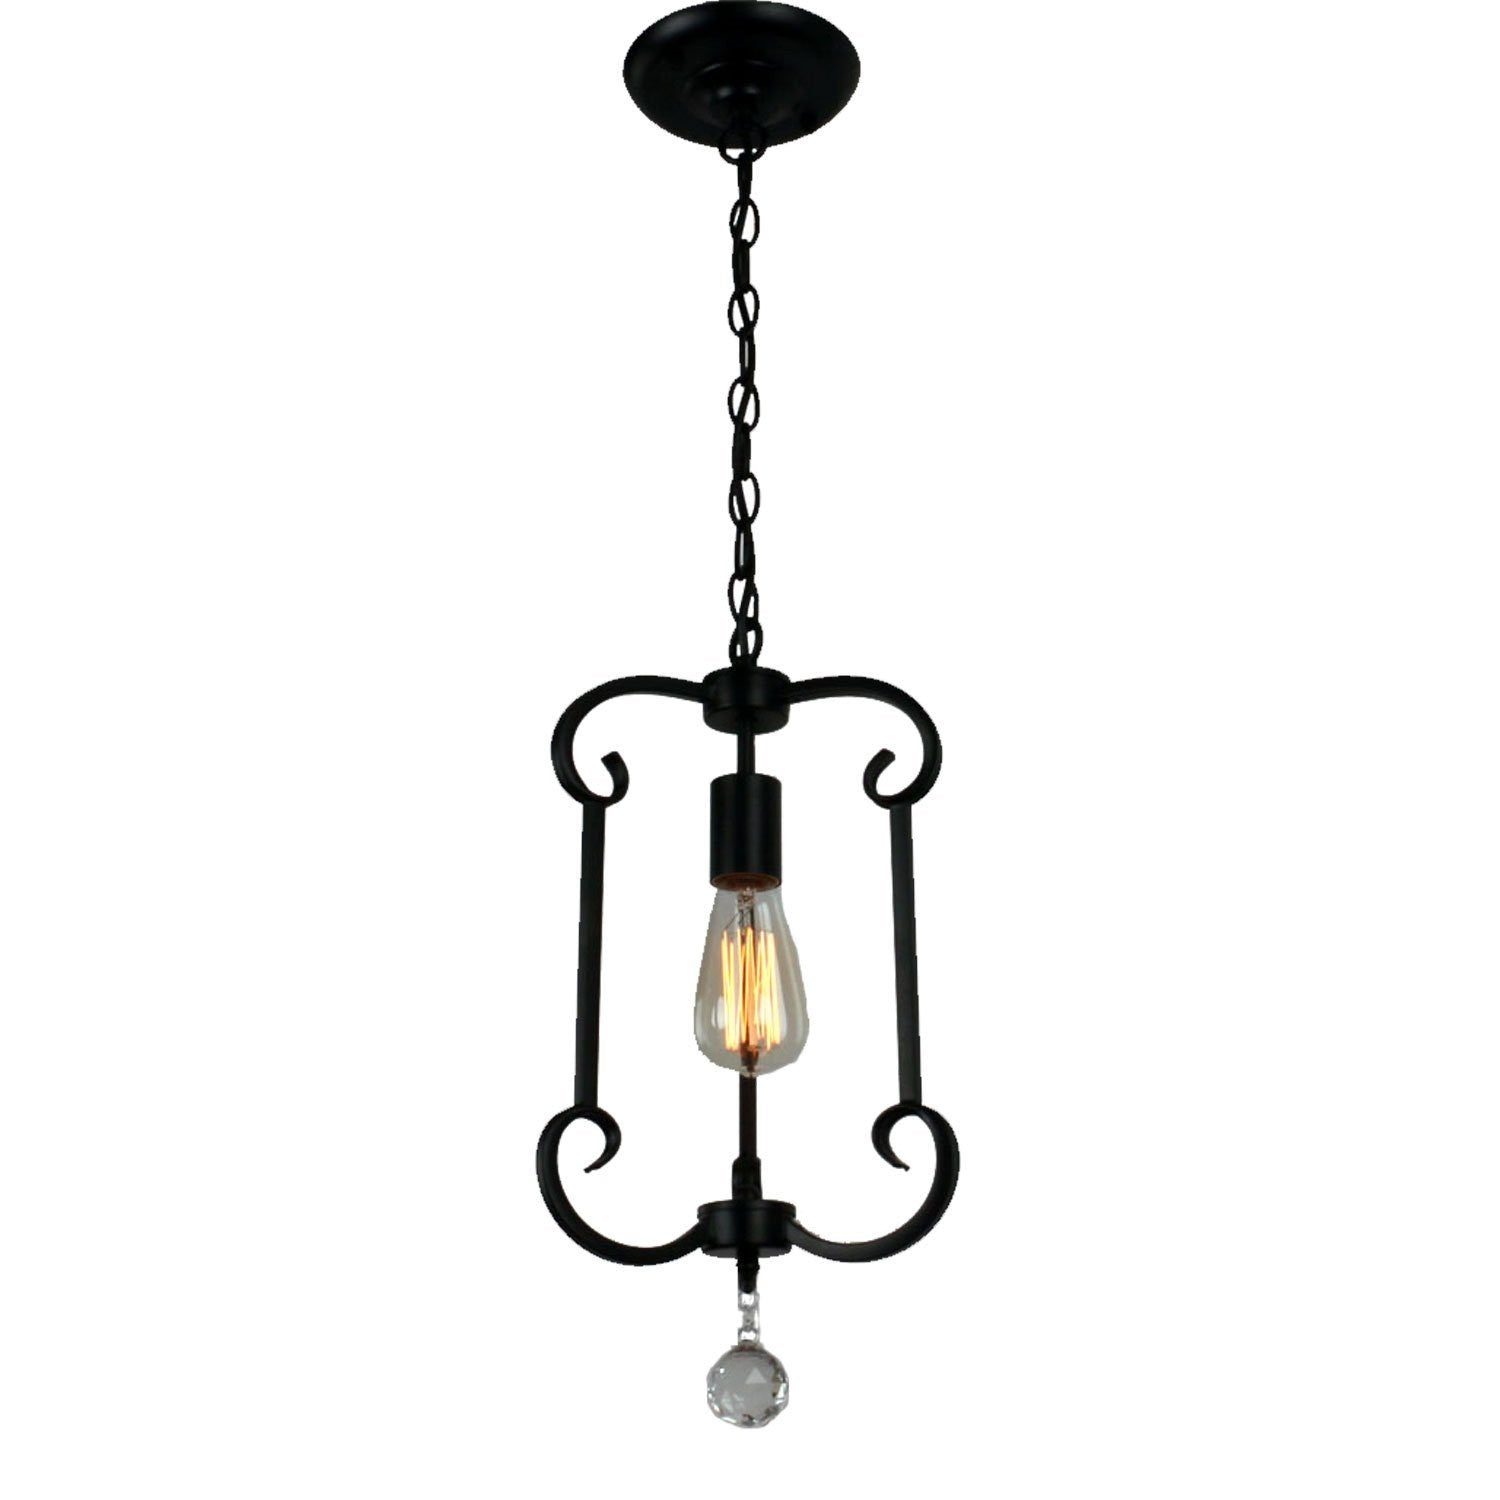 Unitary Brand Traditional Black Metal Steel Art Crystal Single Pendant Light with 1 E26 Bulb Socket 40W Painted Finish